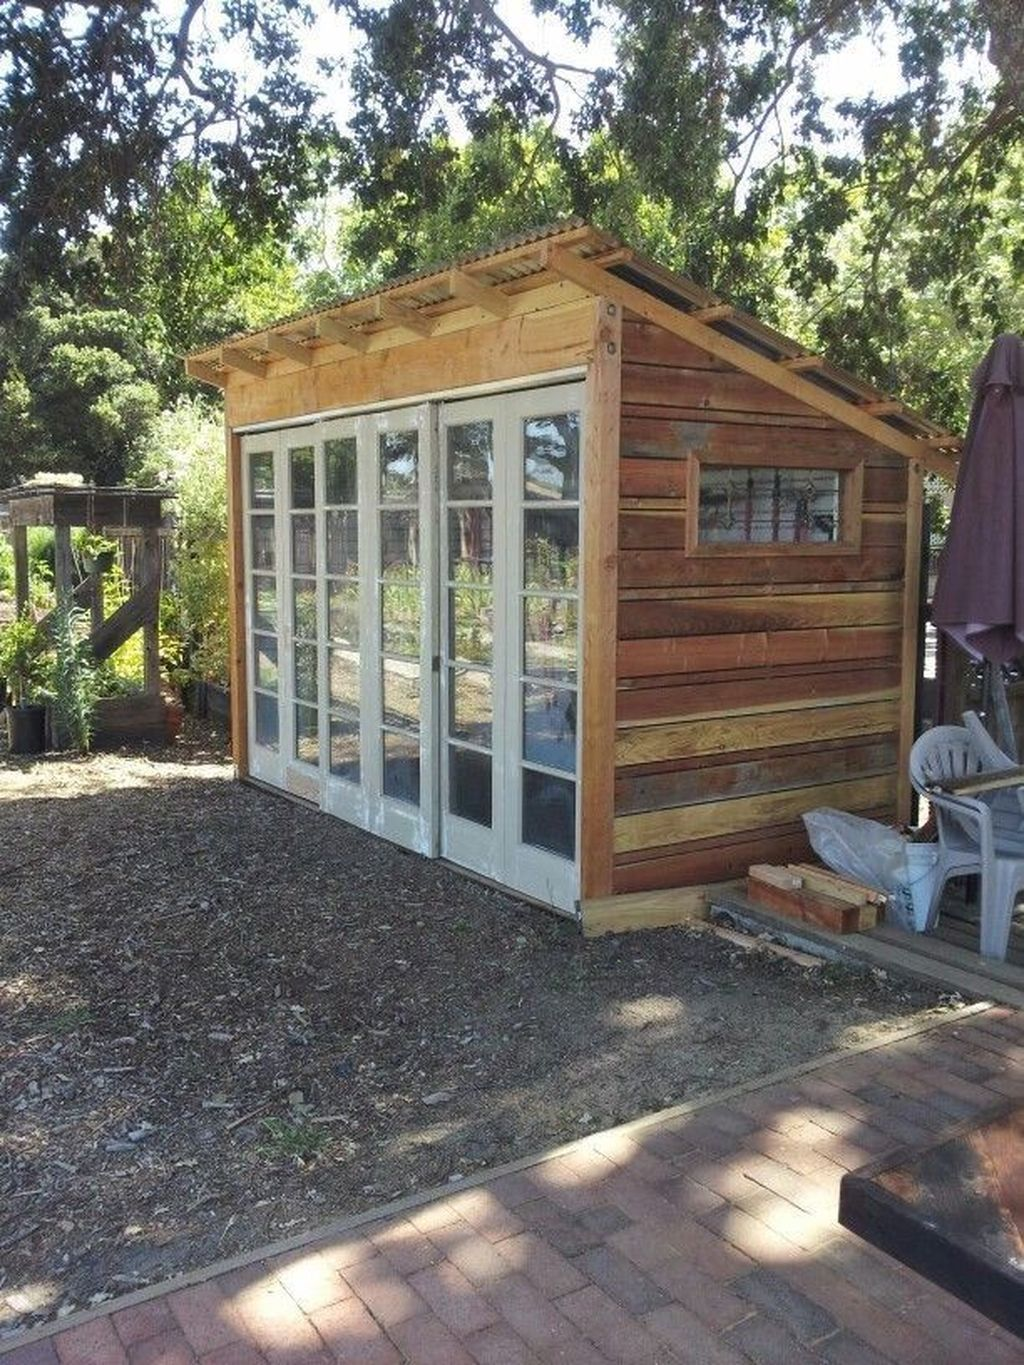 Incredible Wood Backyard Pavilion Design Ideas Outdoor 1: Awesome 45 Incredible Garden Shed Plans Ideas.